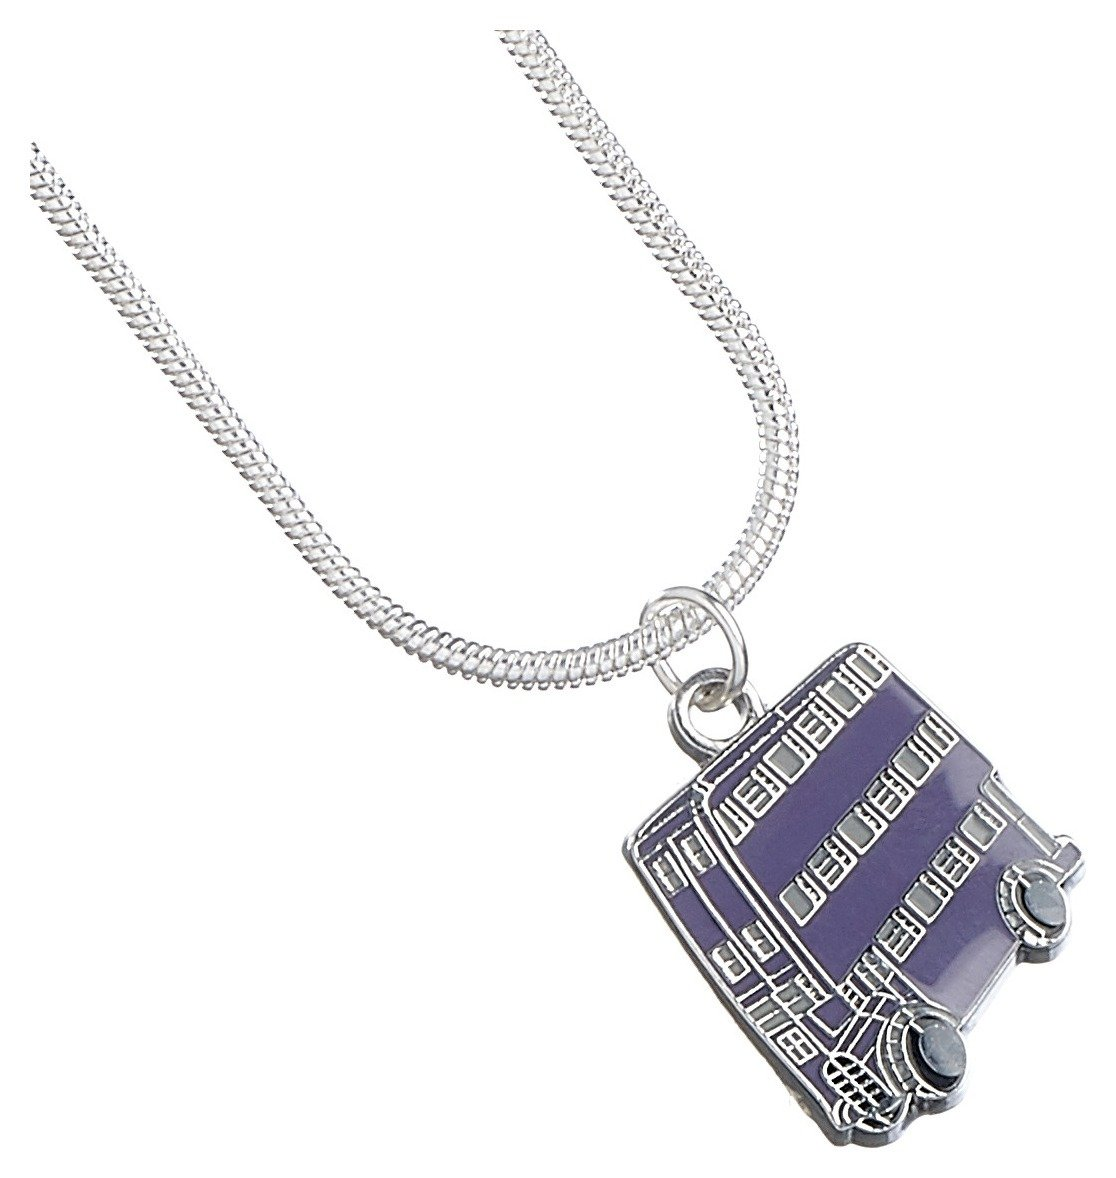 Image of Harry Potter Knight Bus Pendant